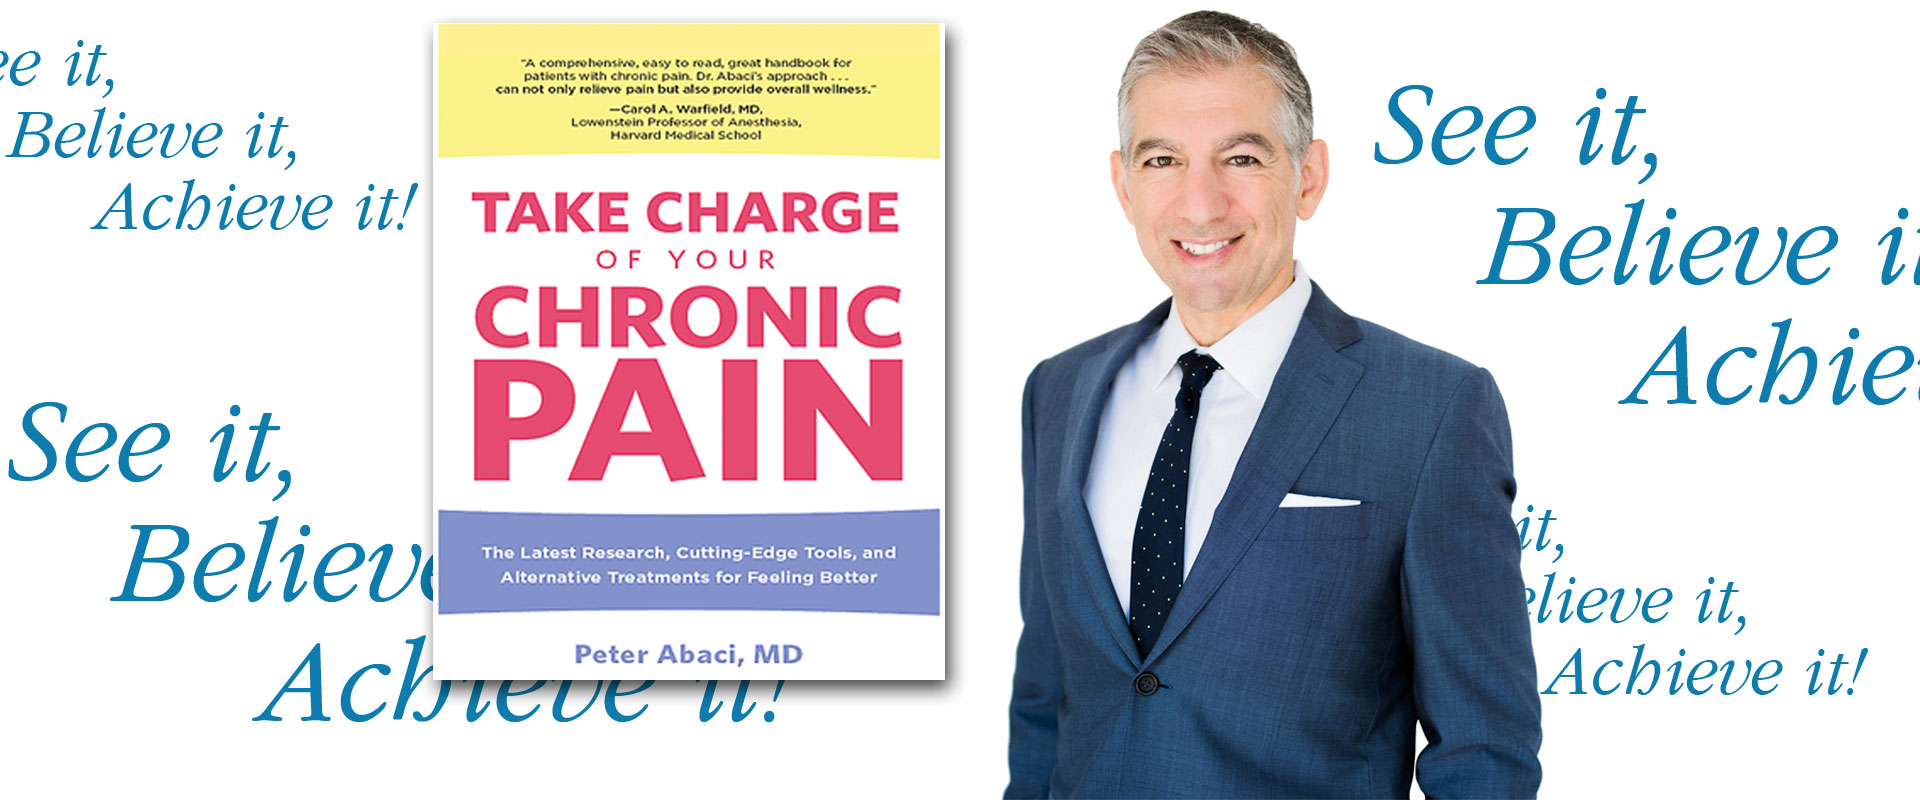 peter abaci md take charge of your chronic pain